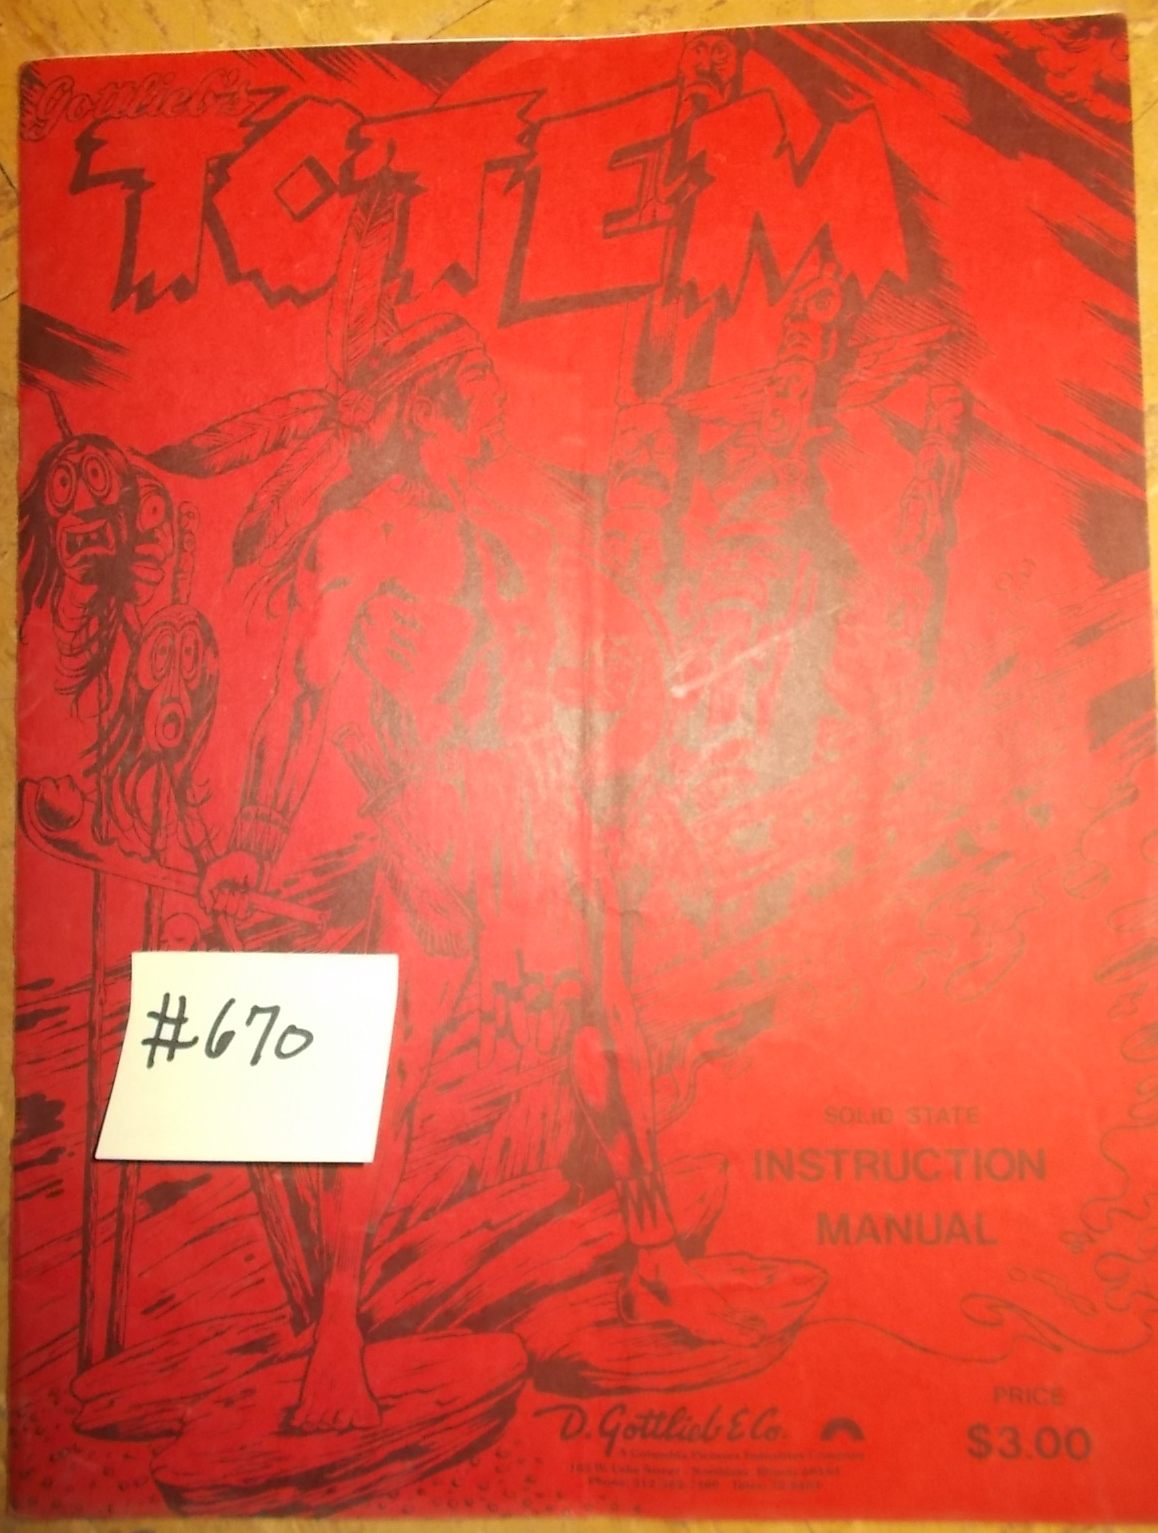 Totem Pinball Machine Game Instruction Manual  670 For